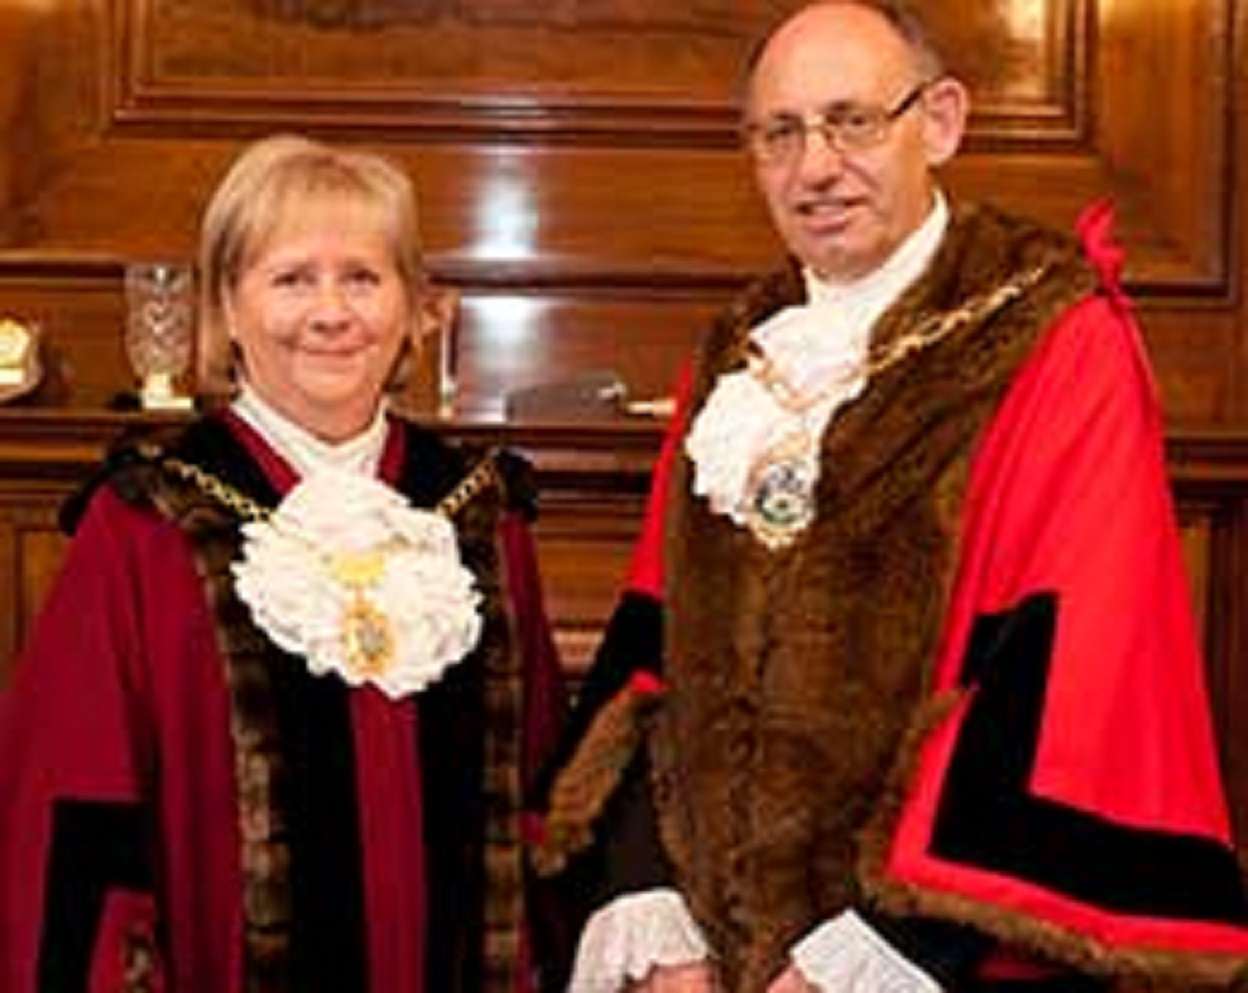 Linda Huggett and Ashley Kissin are bowing out from their roles as mayor and deputy mayor